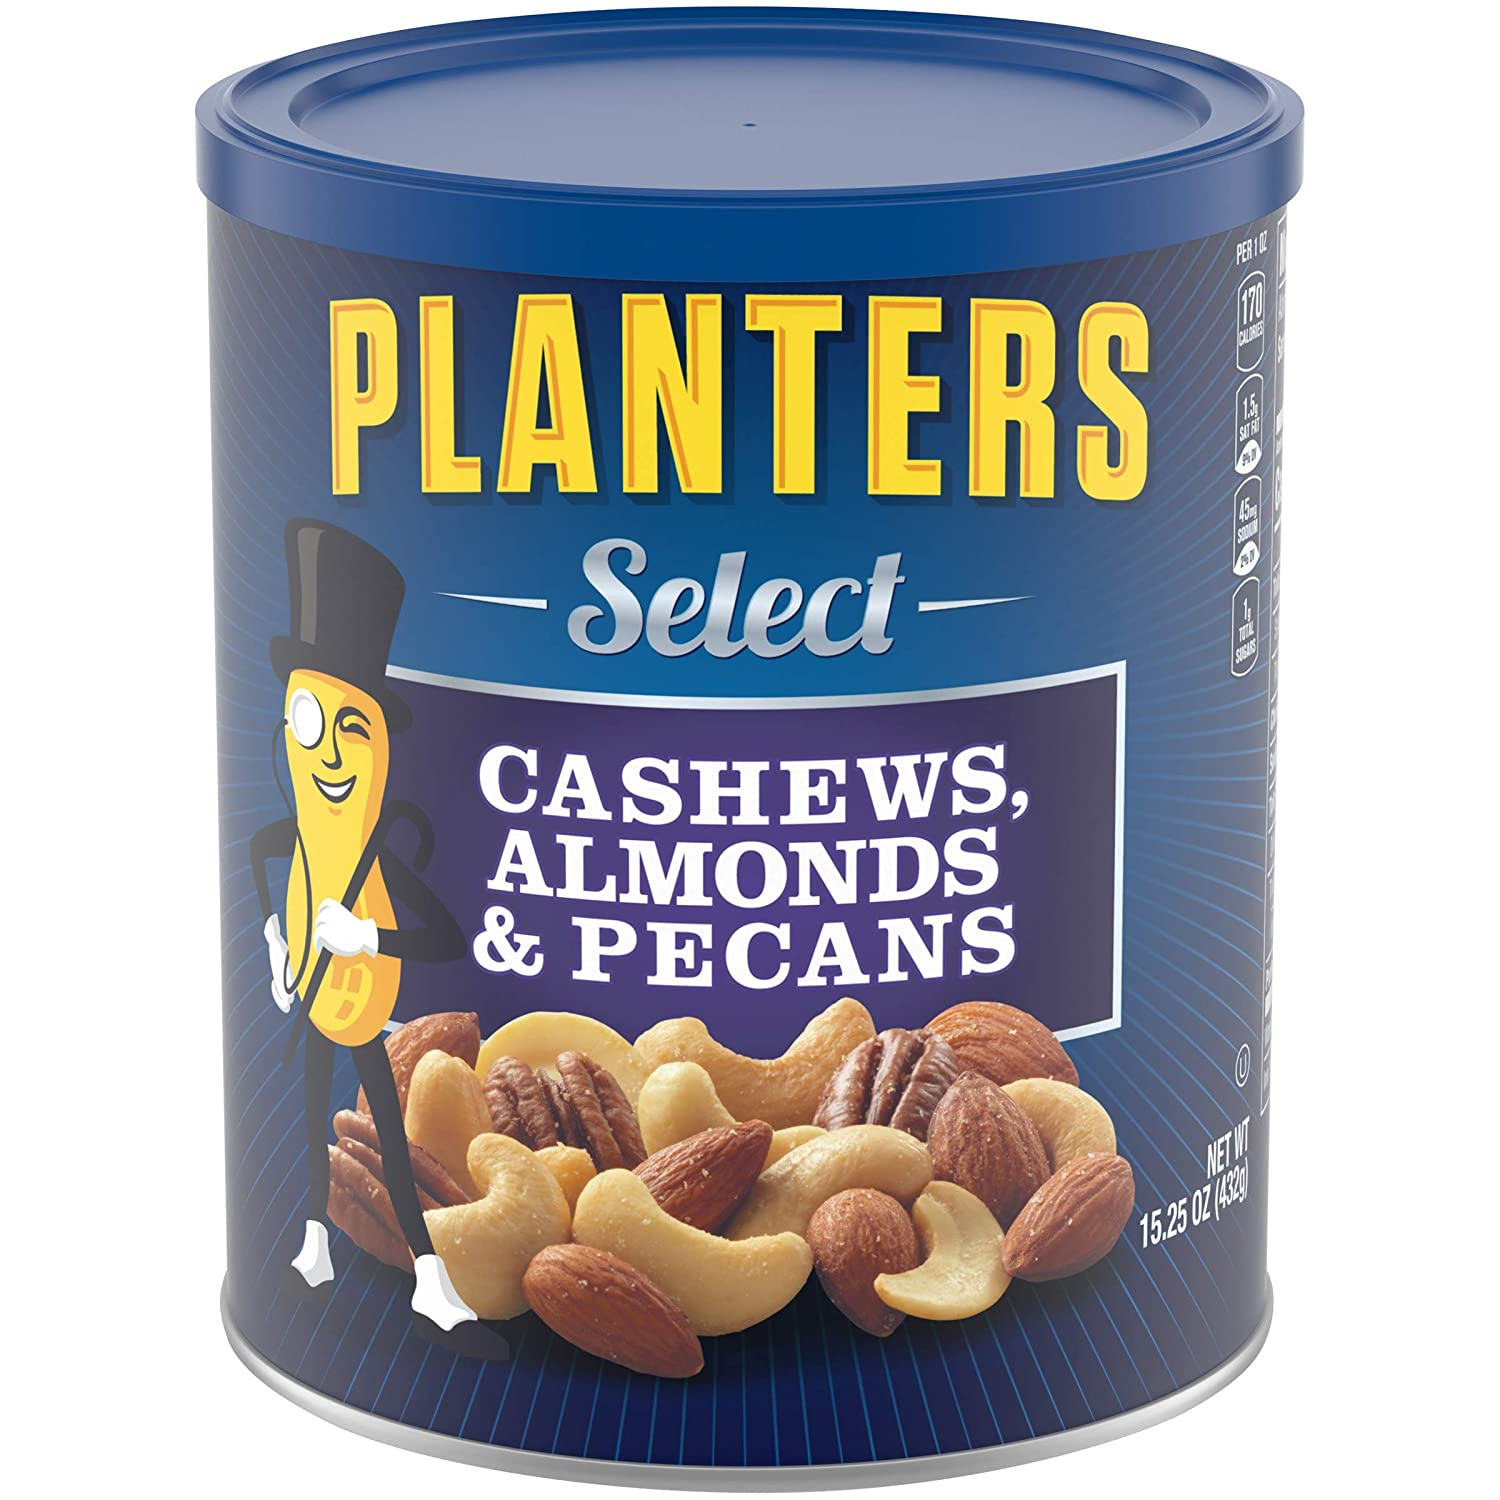 PLANTERS Select Cashews, Almonds & Pecans, 15.25 oz. Resealable Container | Salted Nuts | Kosher